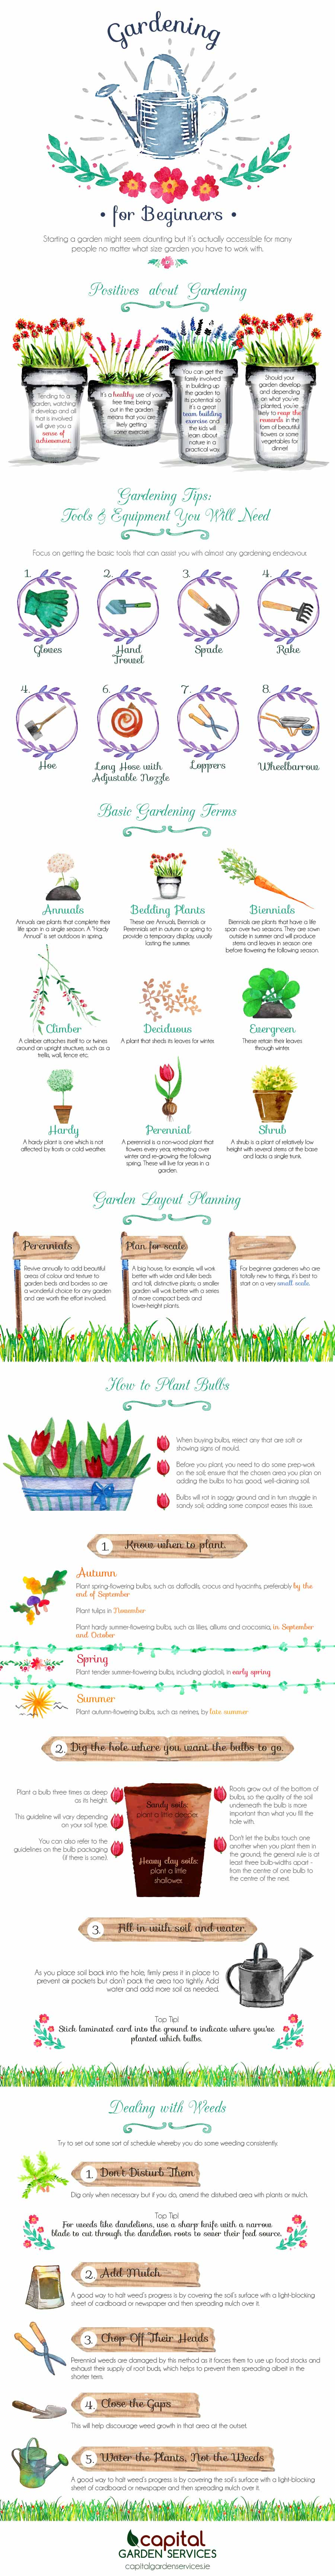 Gardening-for-Beginners-Infographic